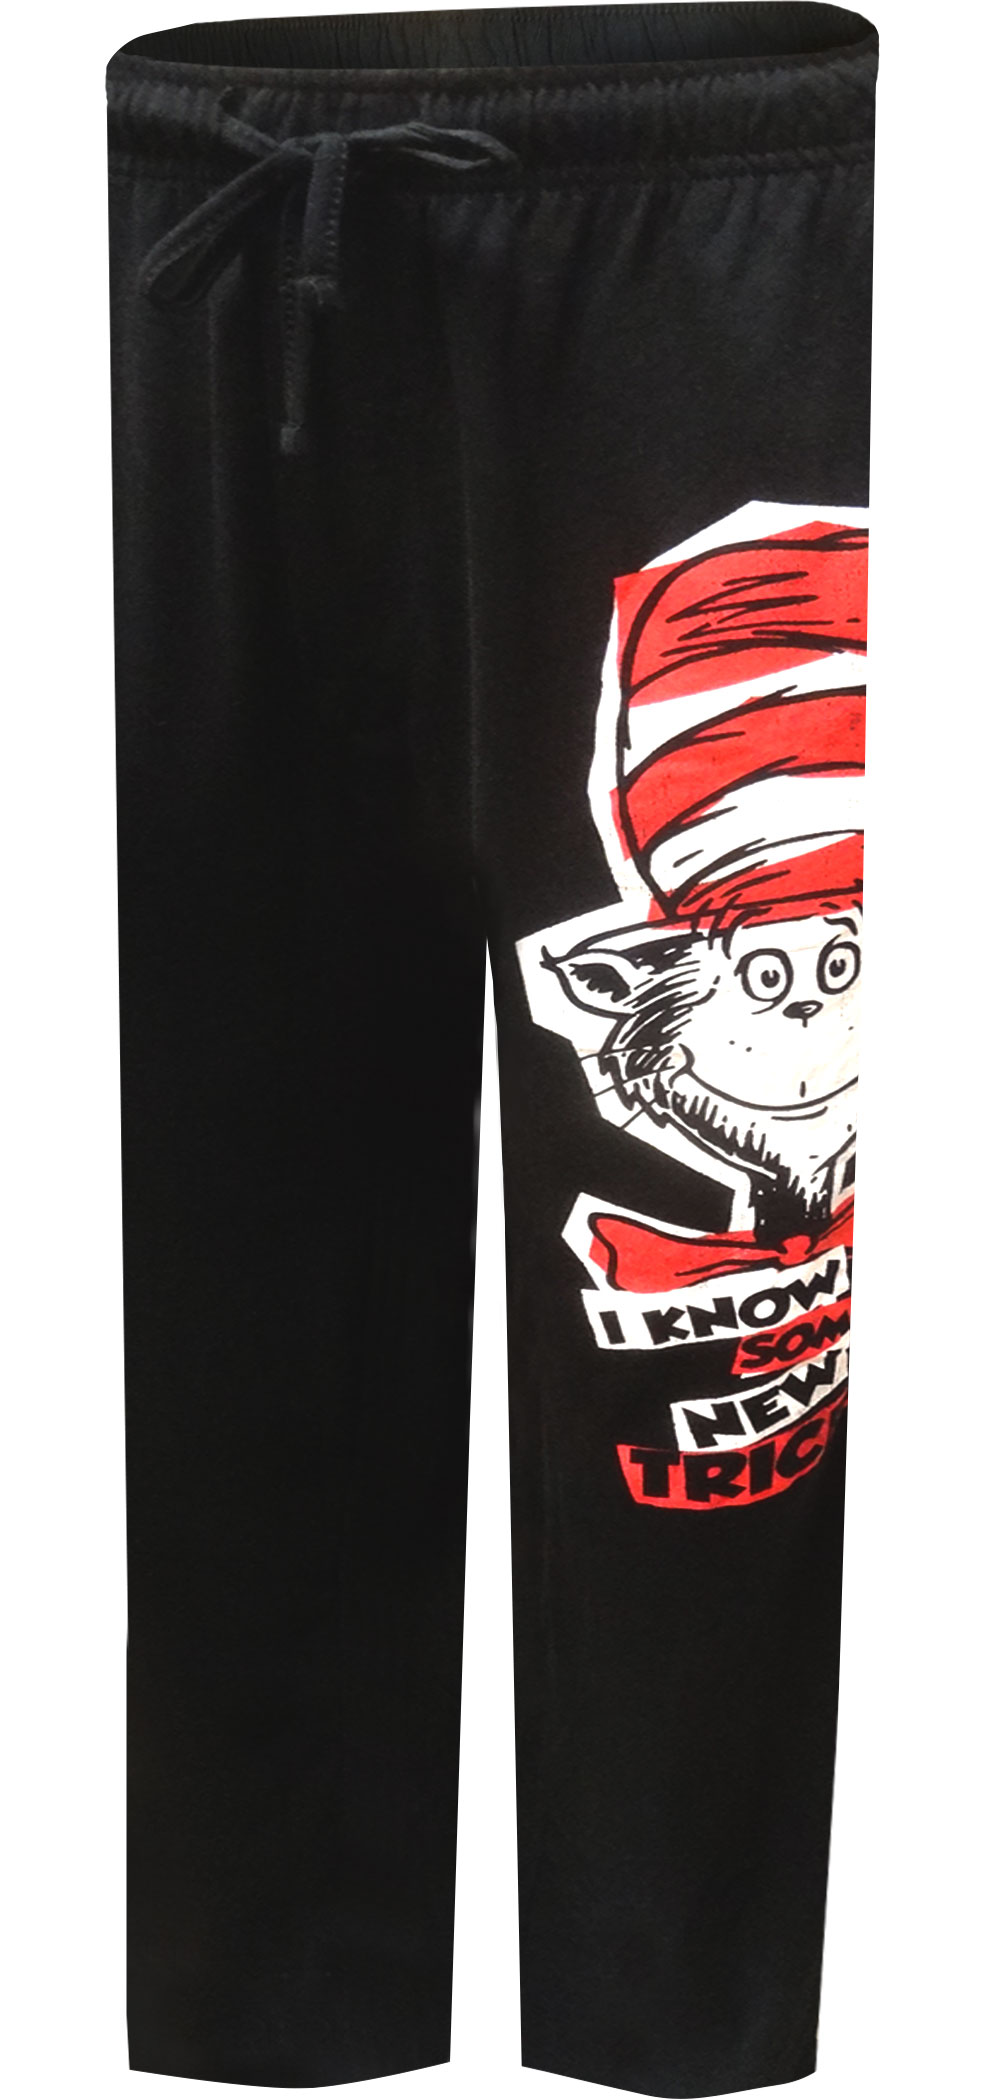 Image of Dr. Seuss Cat in the Hat New Tricks Lounge Pants for men